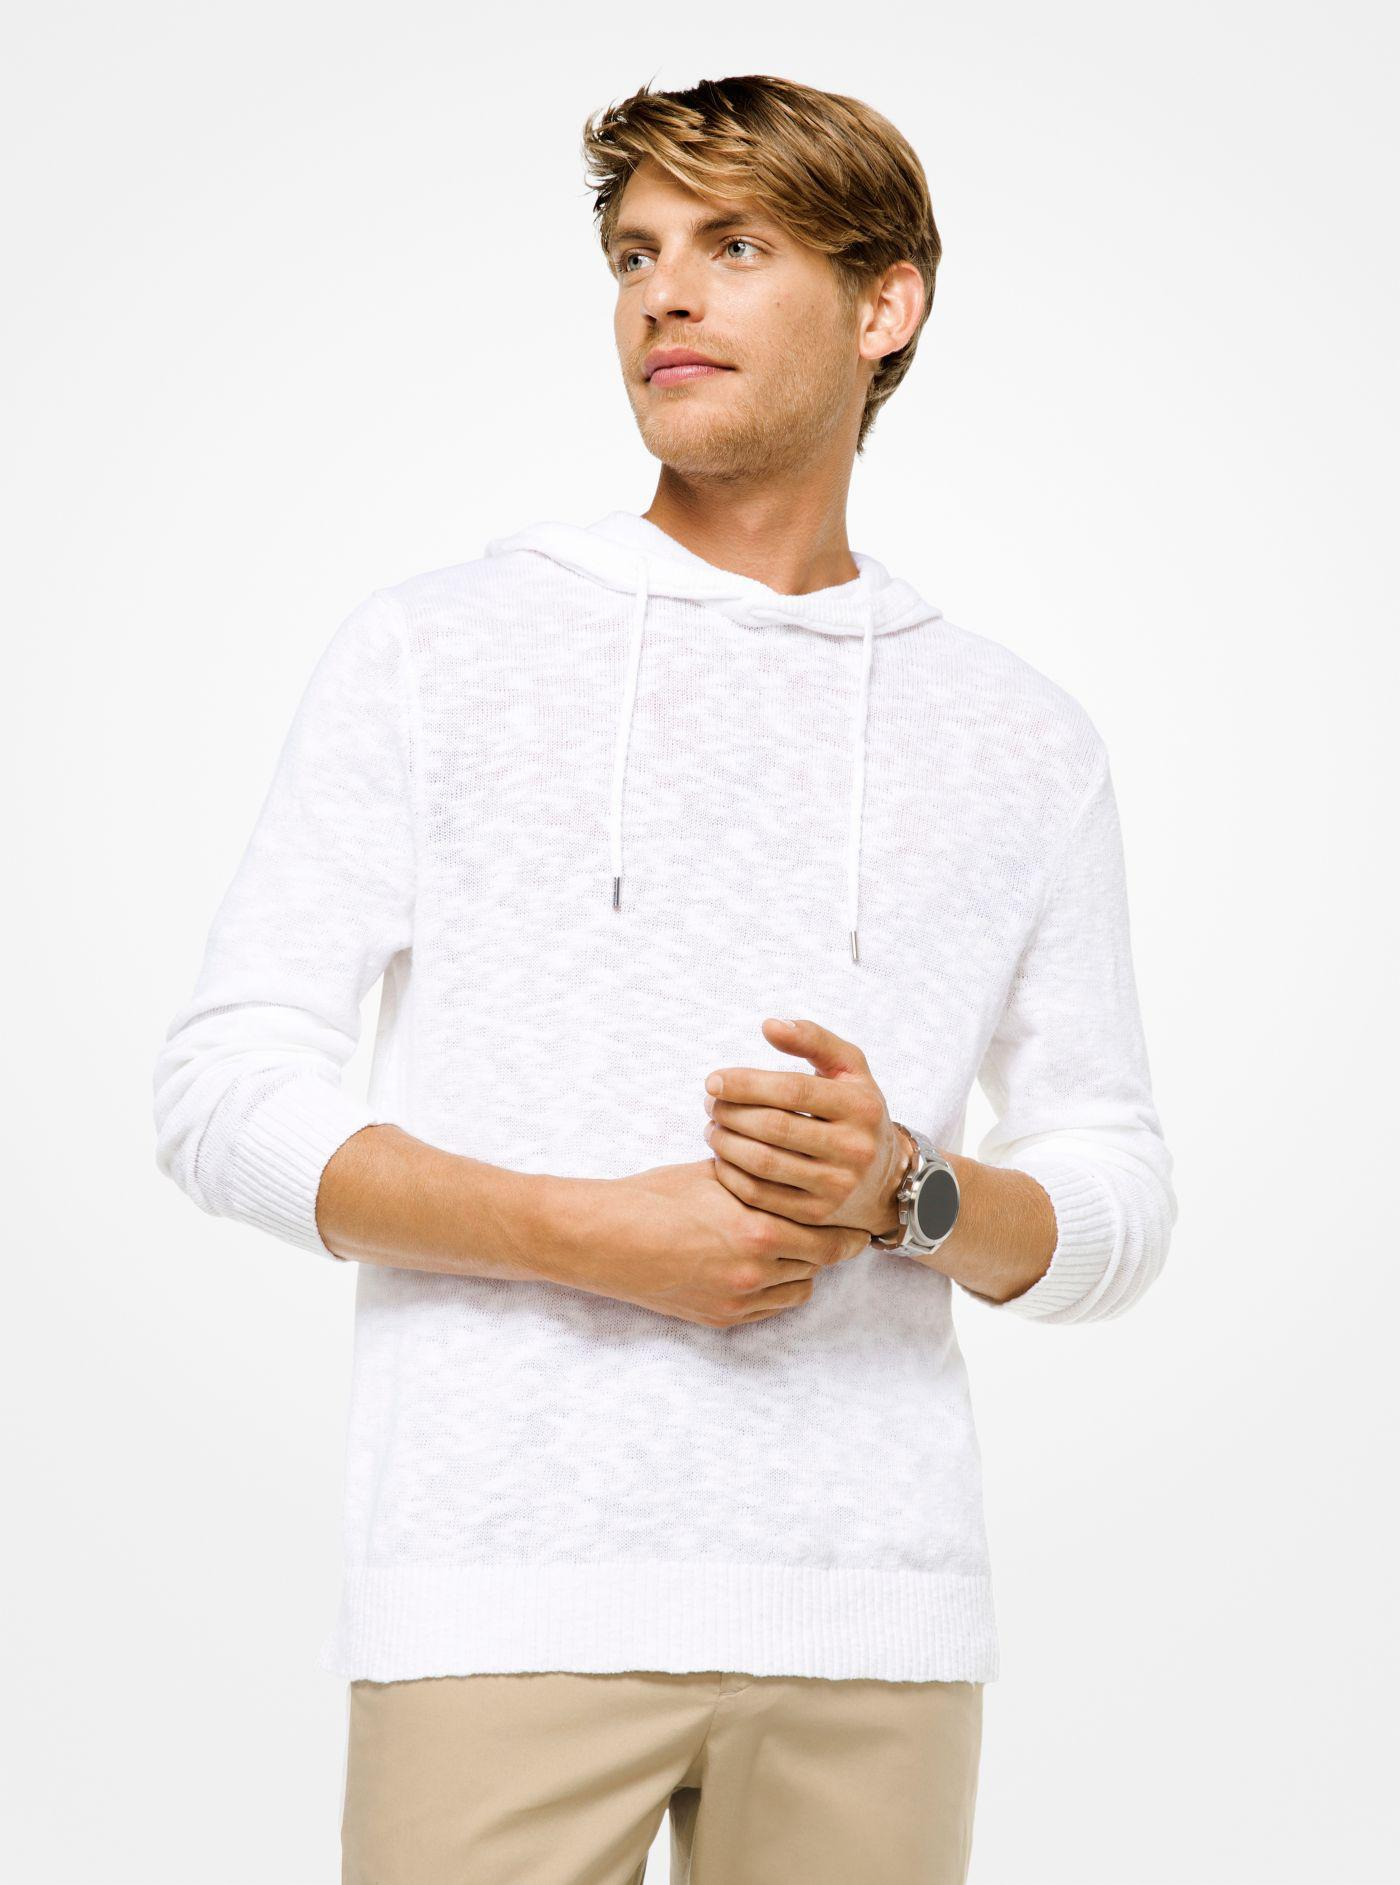 b41af4533cb95 Lyst - Michael Kors Cotton And Linen Hoodie in White for Men